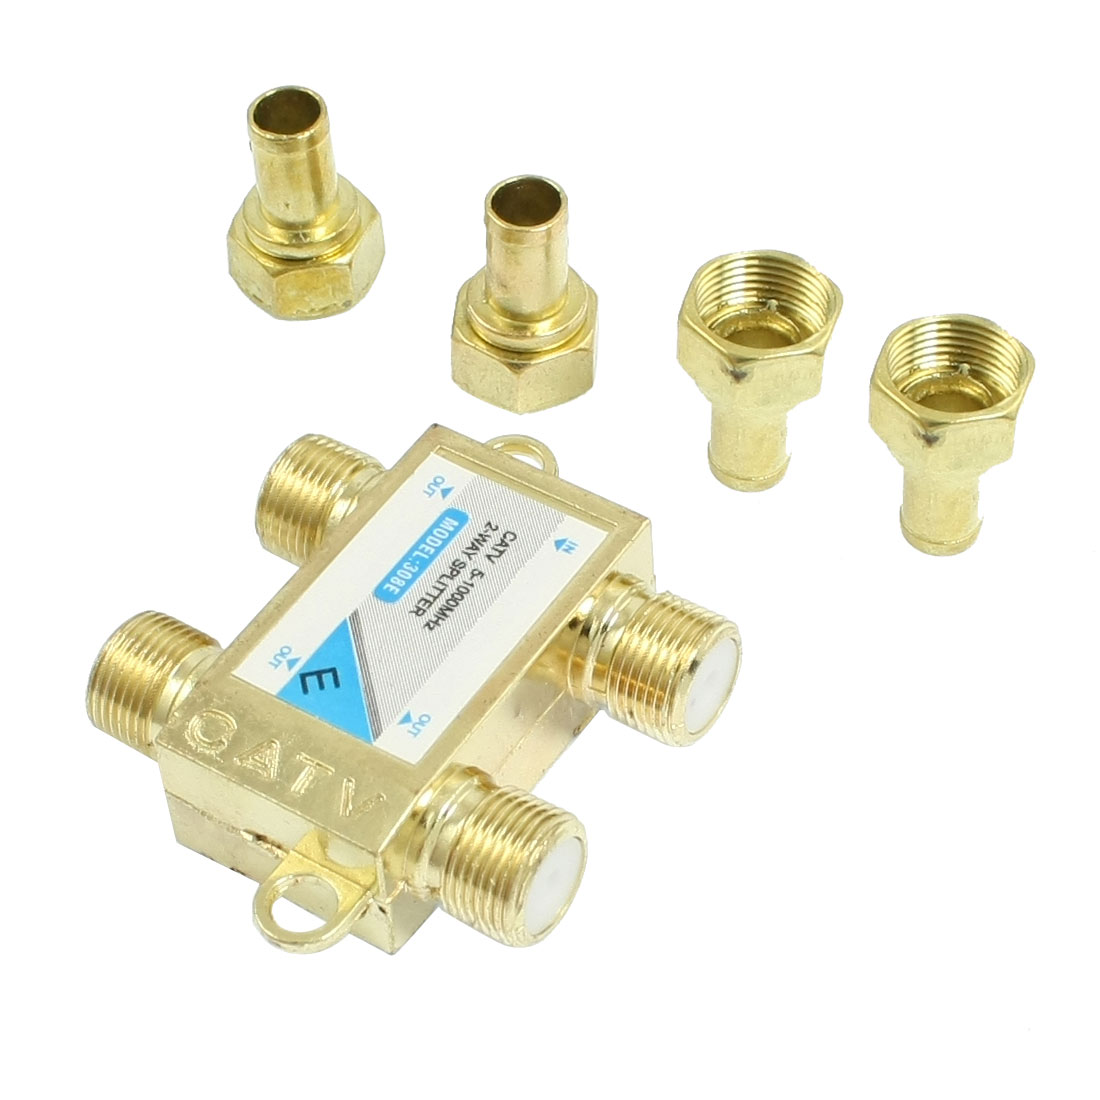 CATV Directional Coupler 1 in 3 out Coaxial Connector 3 Way Splitter